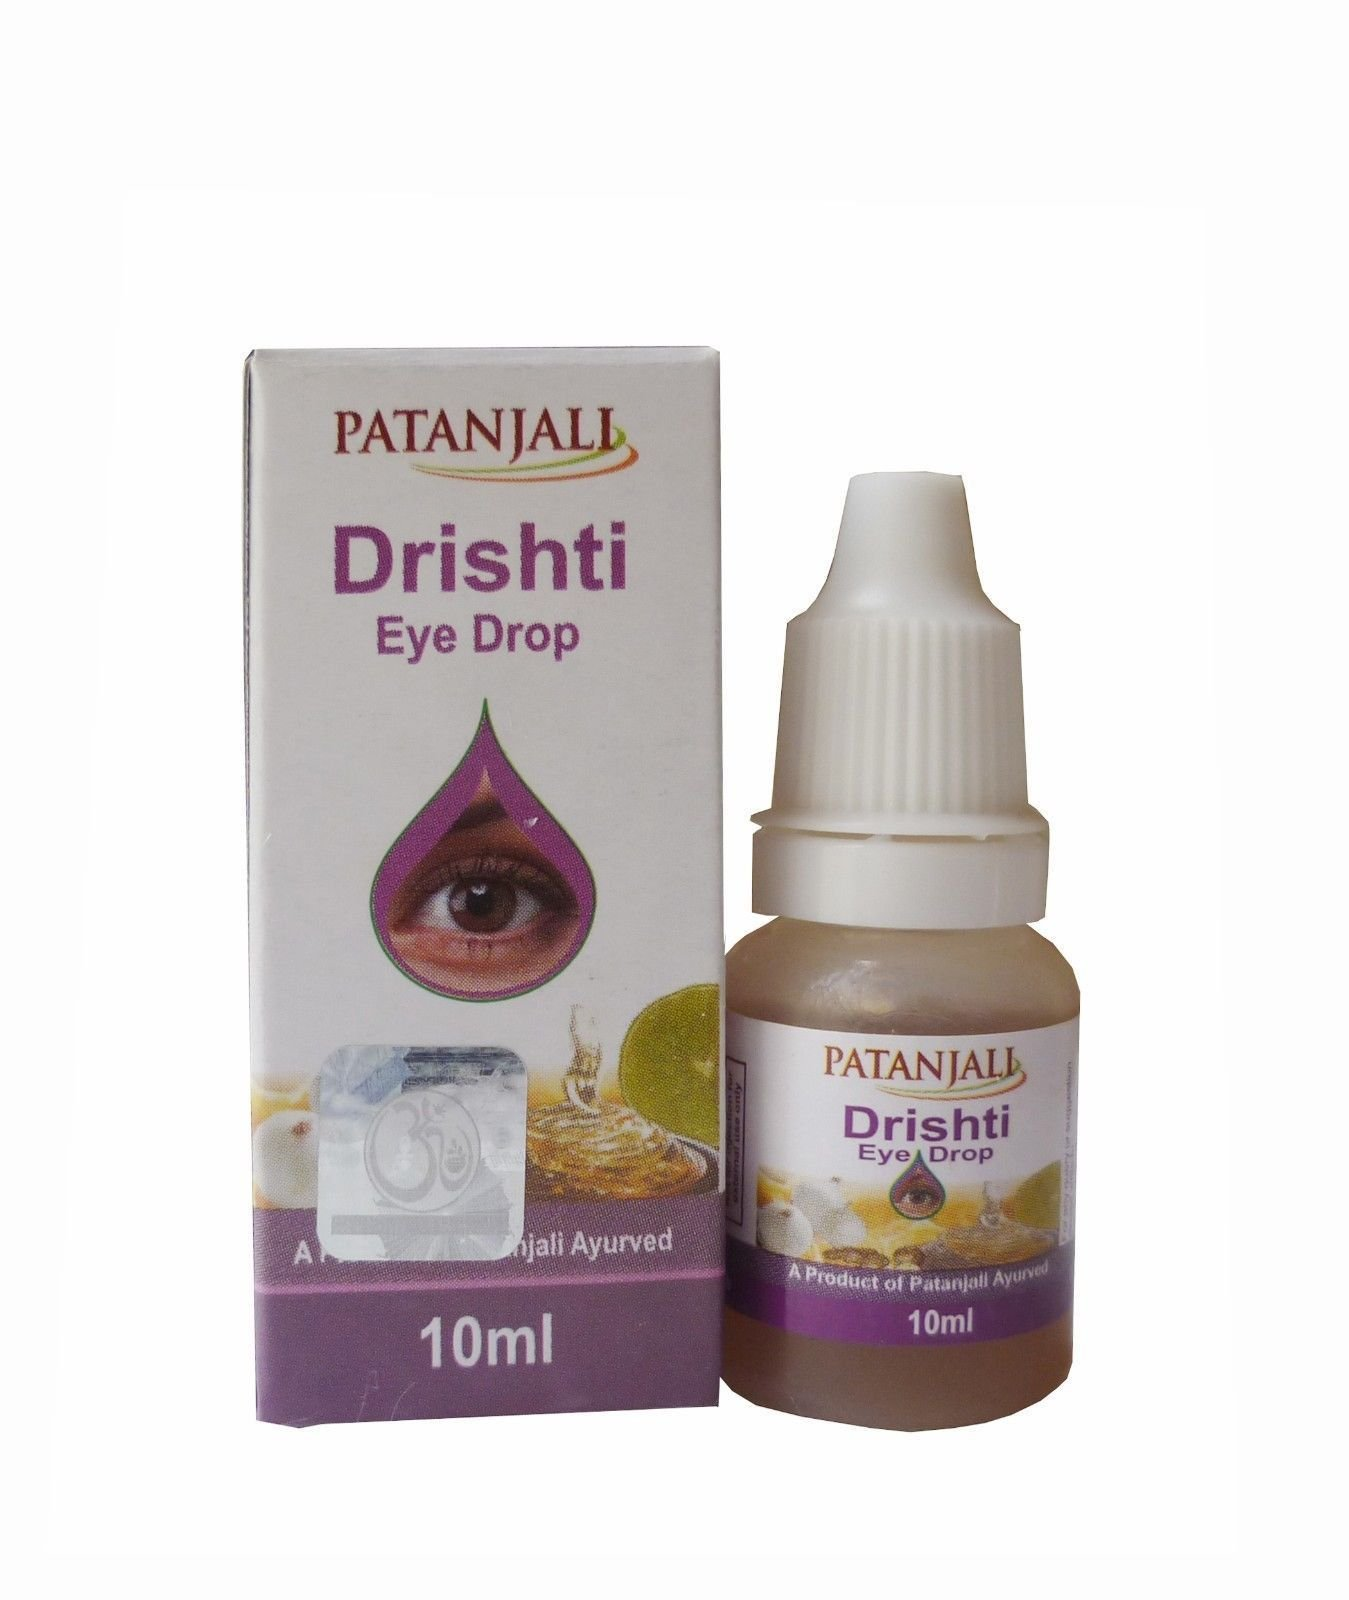 Patanjali DRISHTI Eye Drop (10ml) - Pack of 5